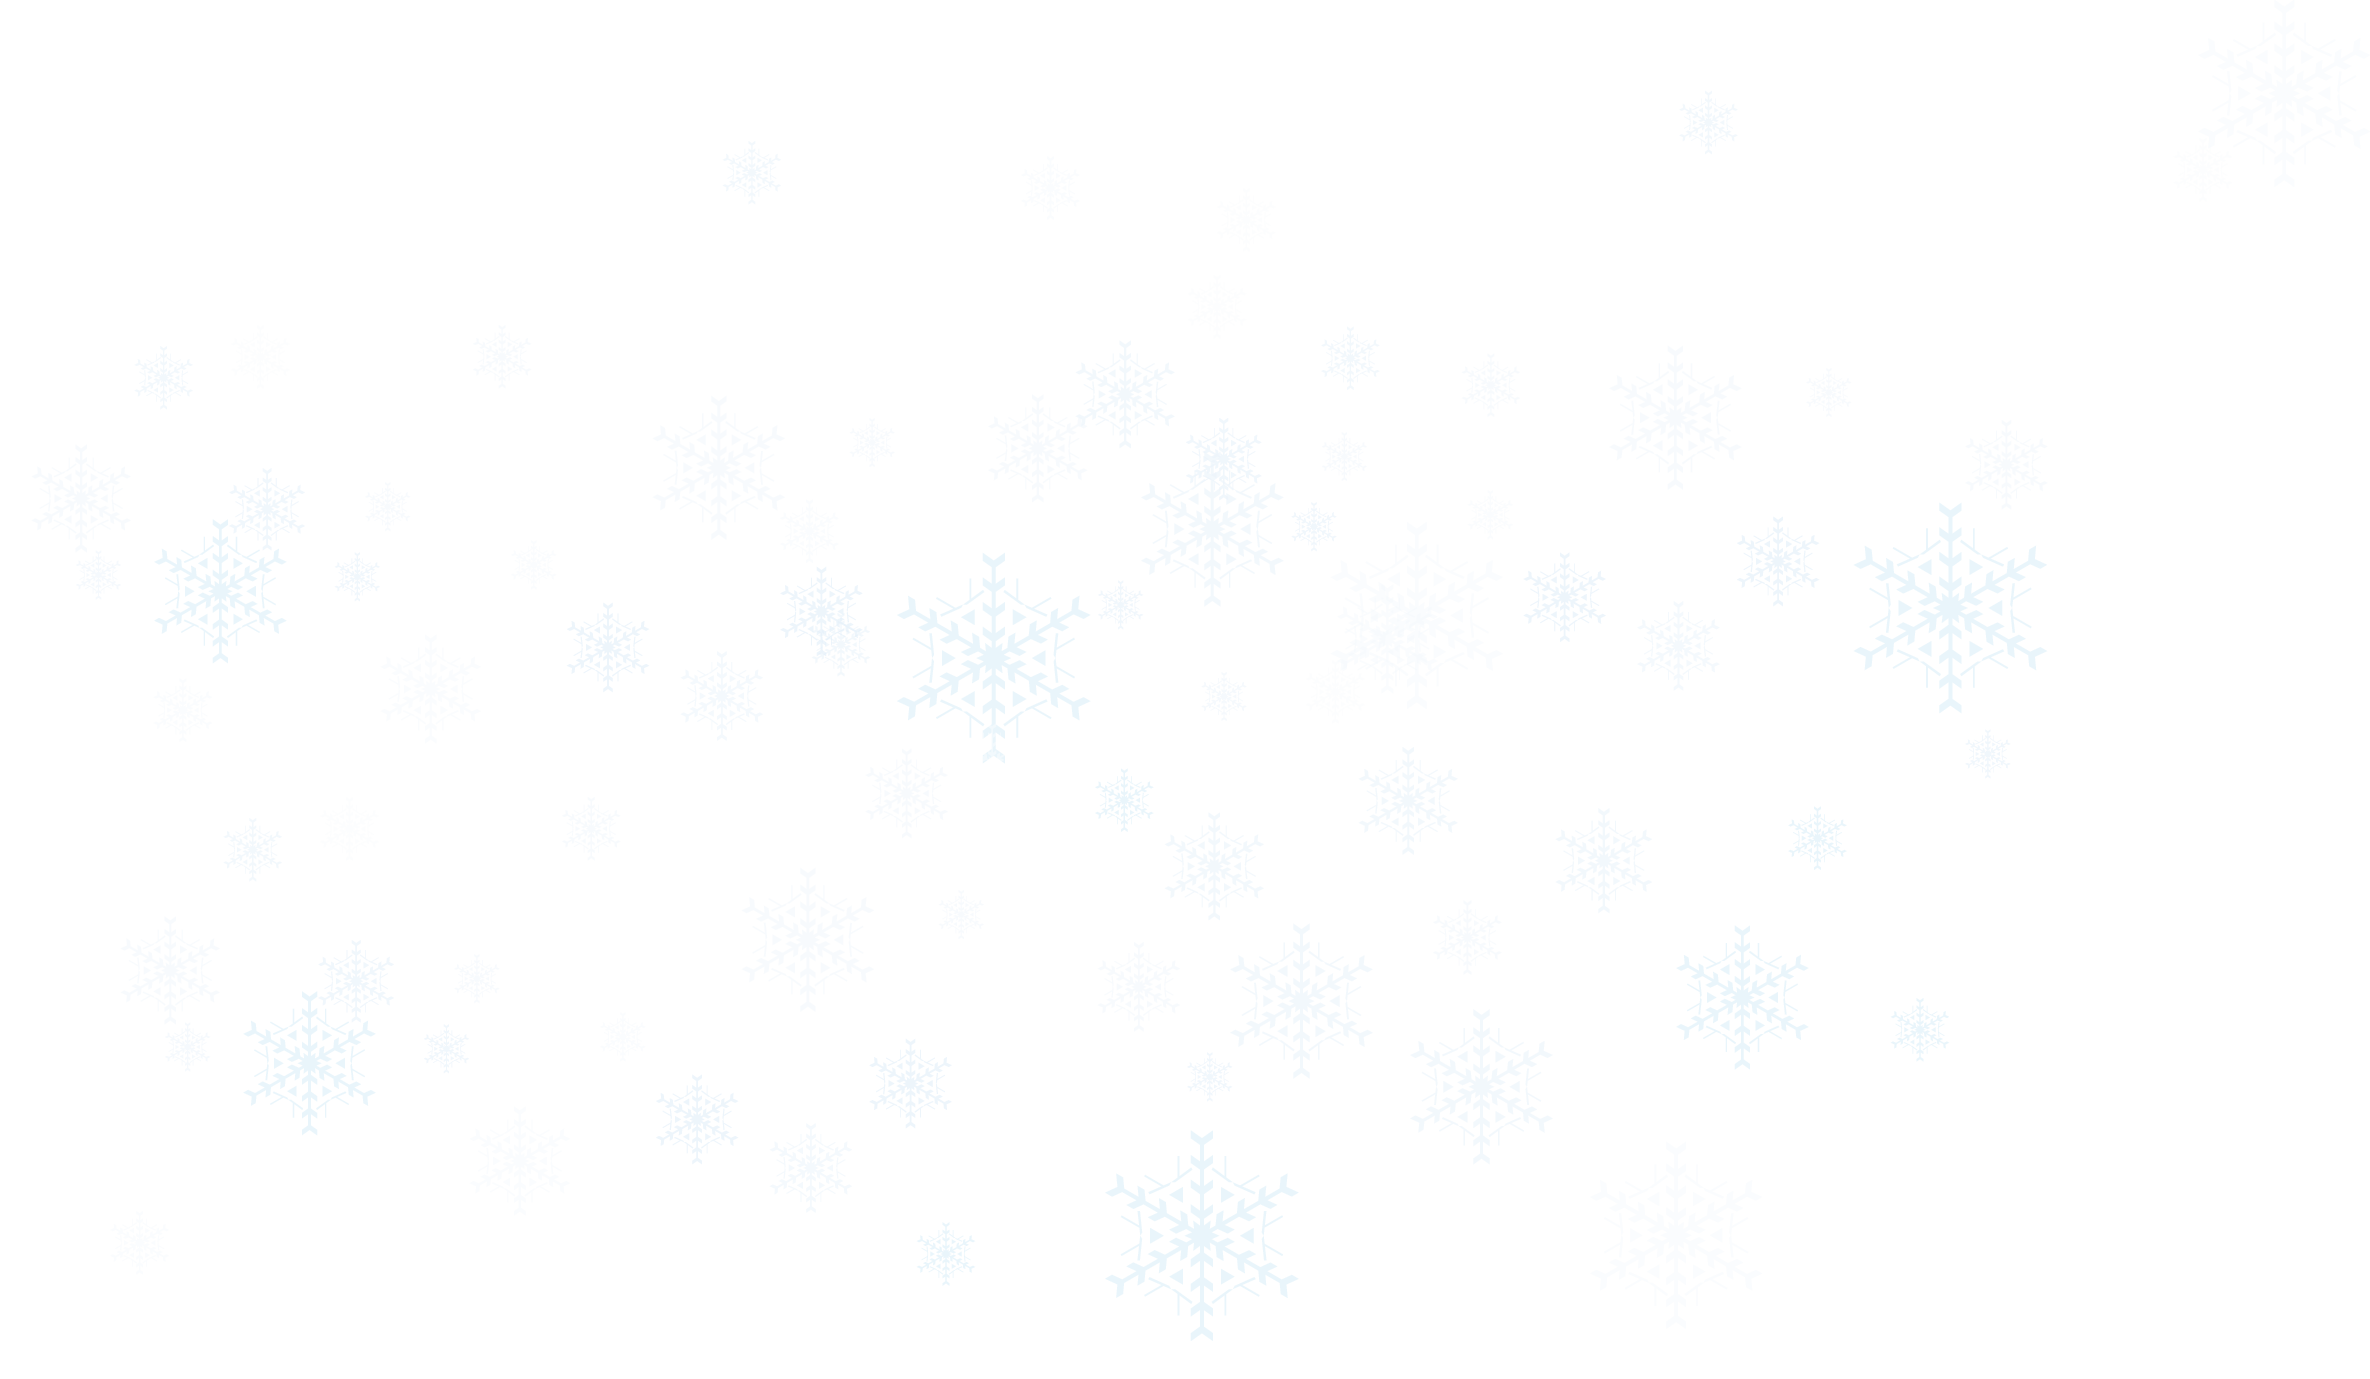 snowflake-clipart-transparent-background-16516-1--2